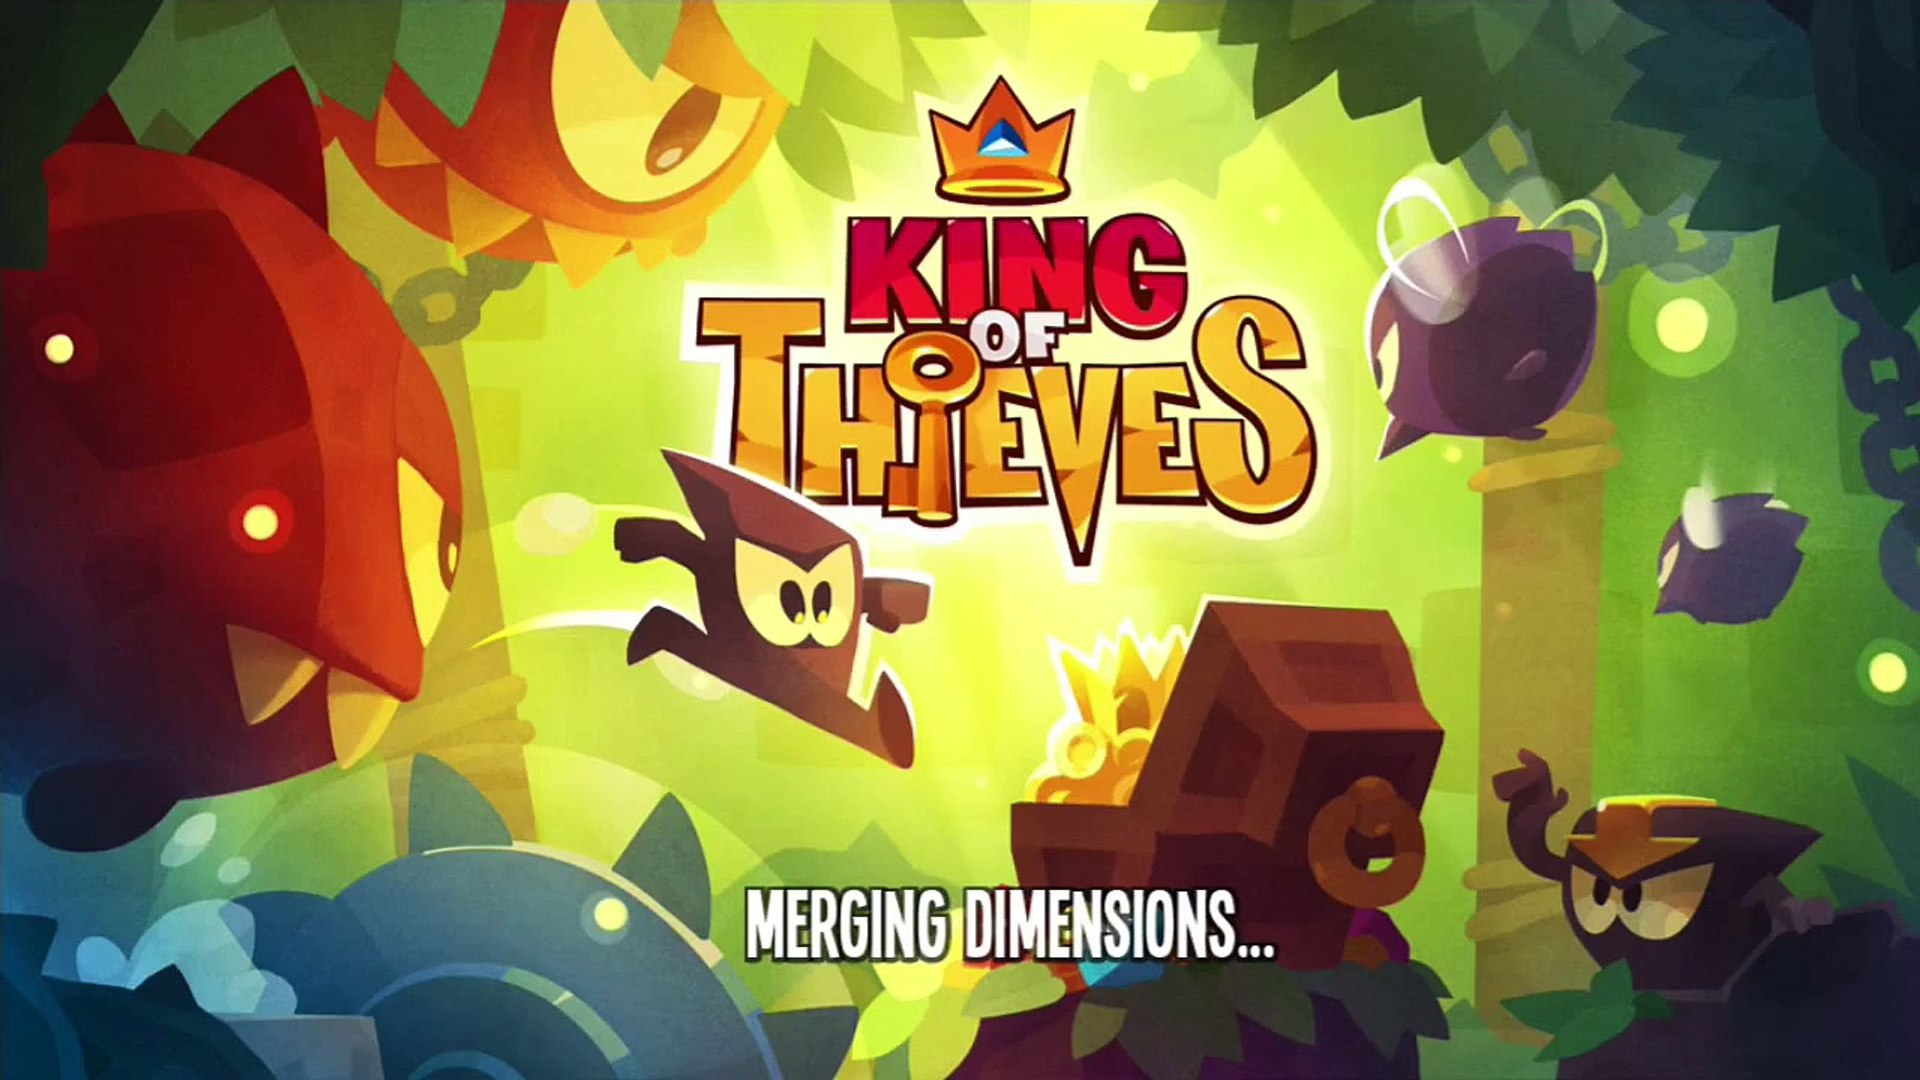 King Of Thieves Hack - How to make a hacked base [iOS + Android]